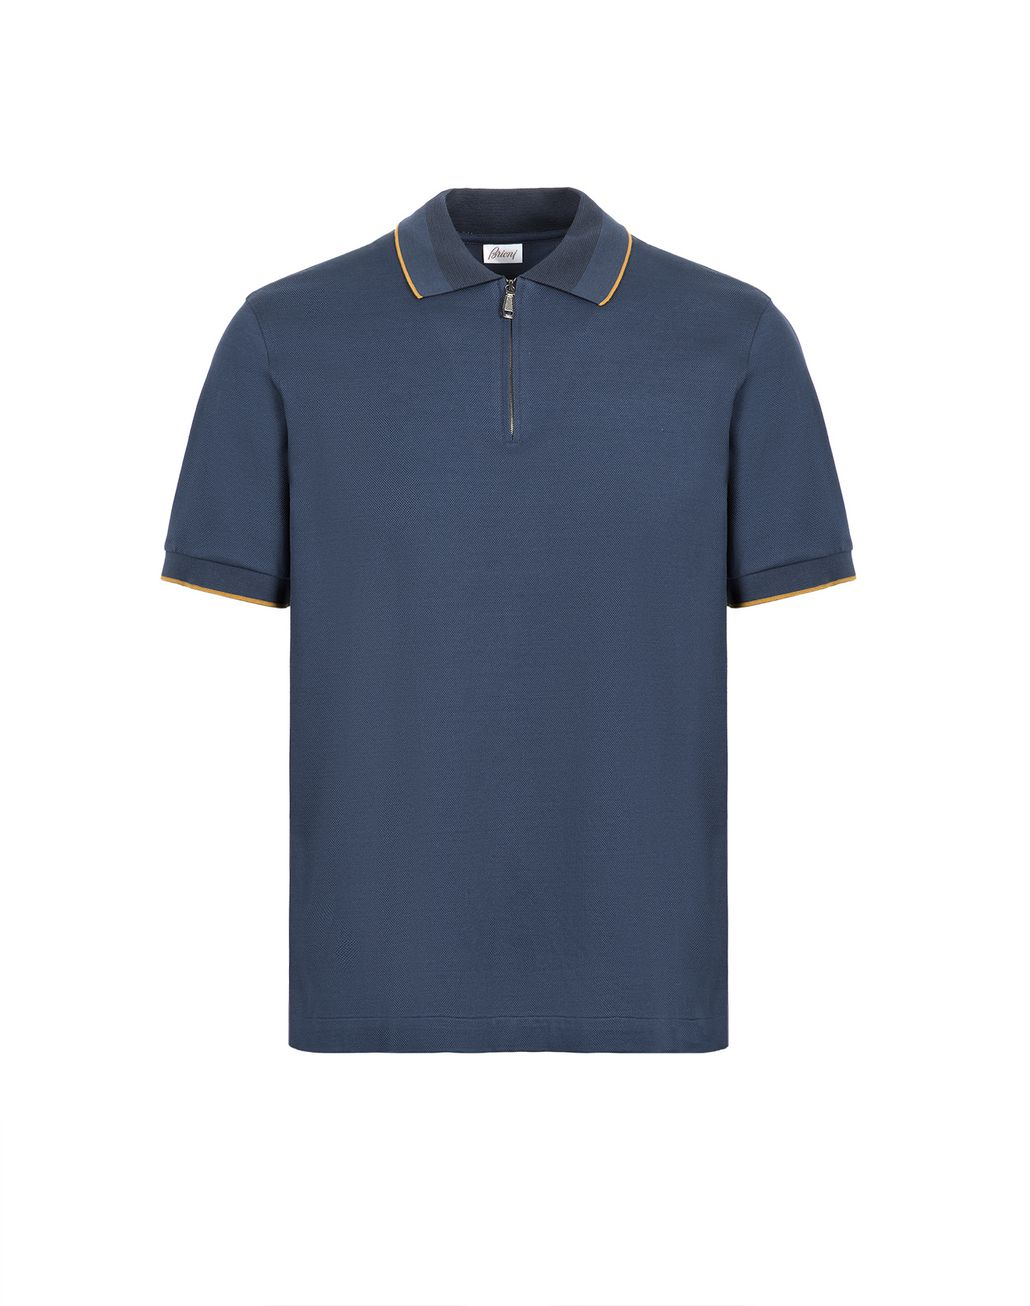 BRIONI Navy Blue Zipped Polo Shirt with Mustard Details T-Shirts & Polos [*** pickupInStoreShippingNotGuaranteed_info ***] f